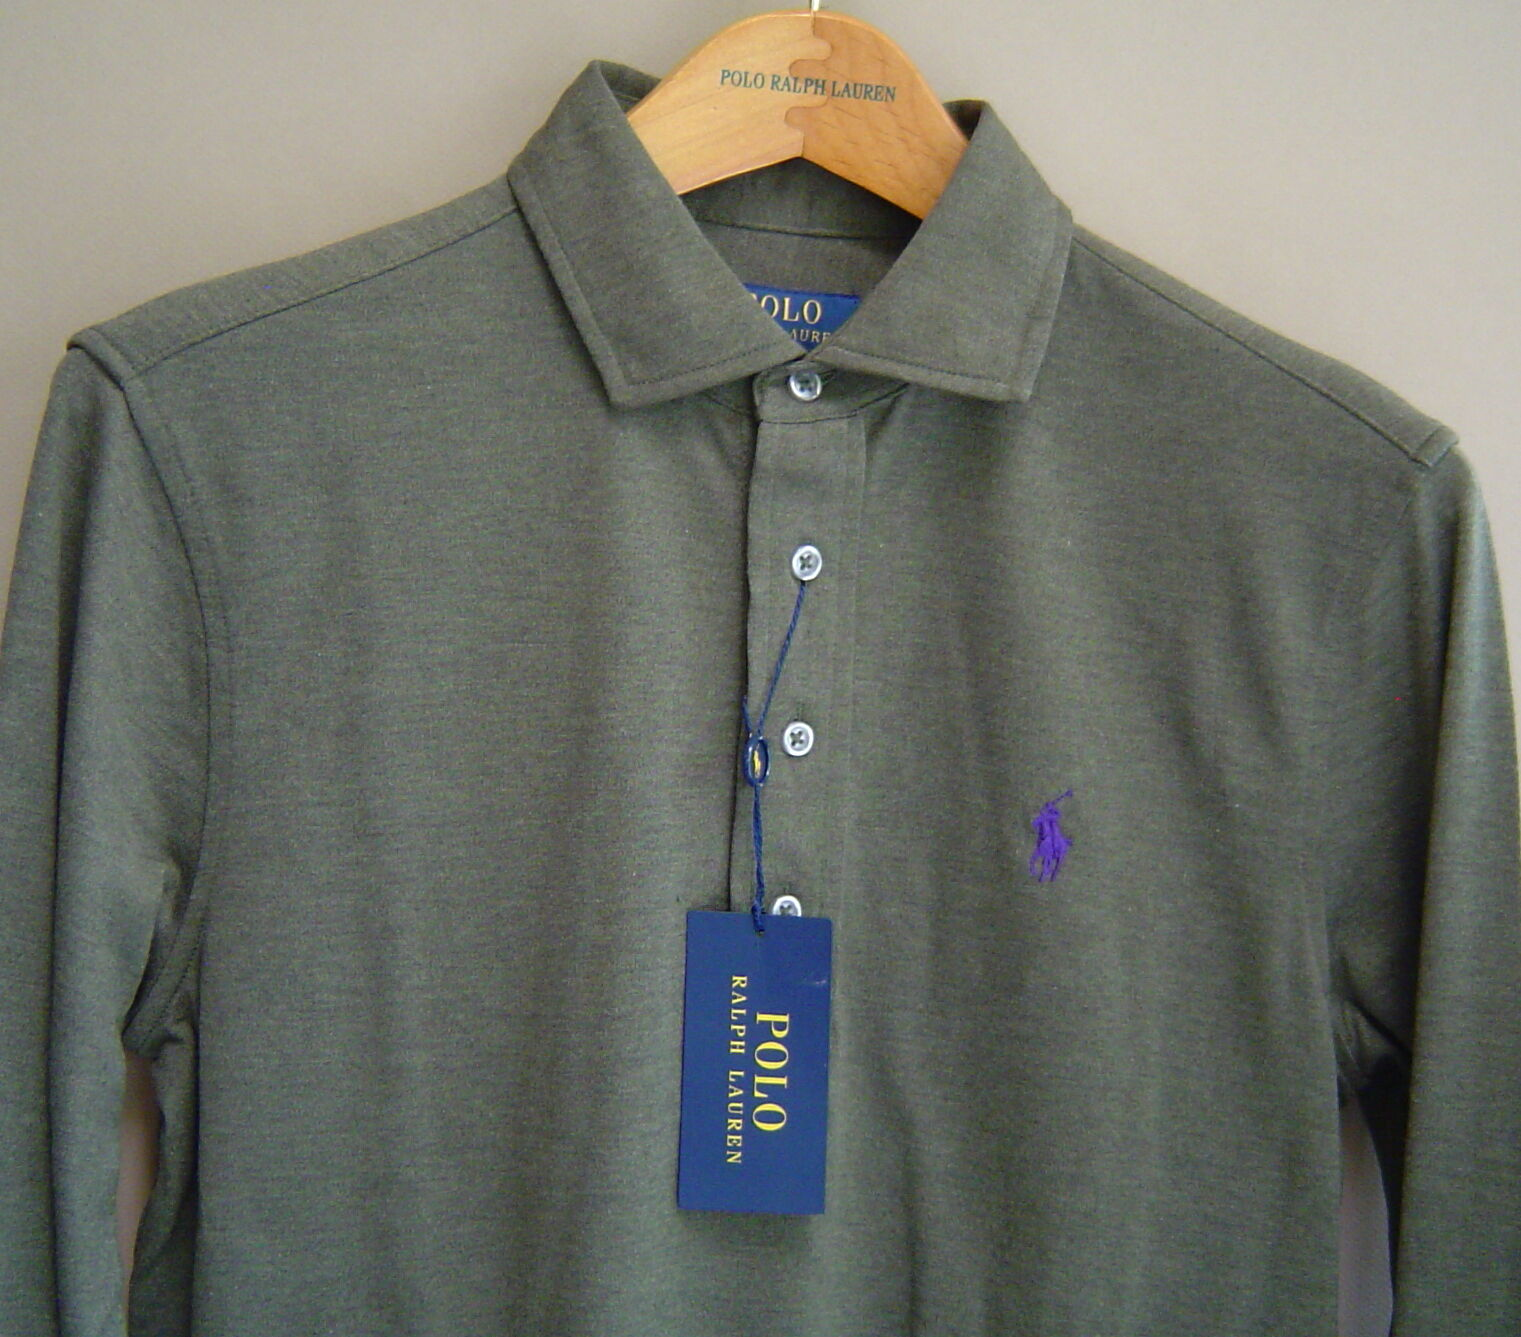 NWT  POLO RALPH LAUREN Mens S JACQUARD POPOVER Alpine Heather Green L S Shirt